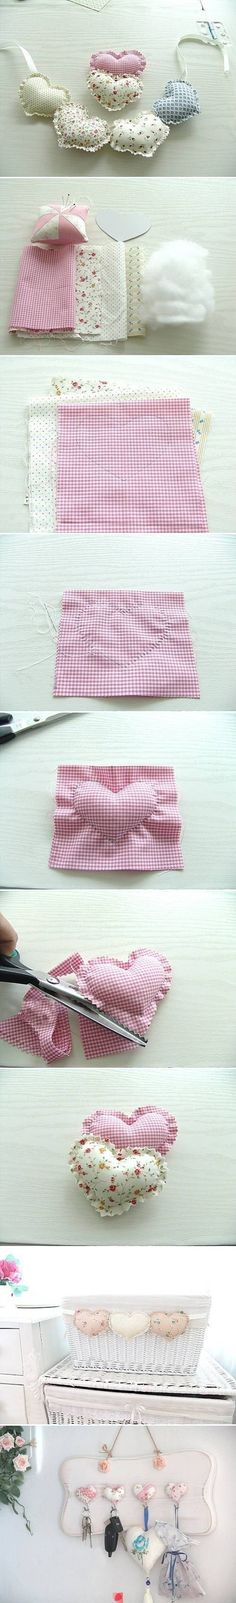 DIY Fabric Heart Pendant by wanda Sewing Tutorials, Sewing Hacks, Sewing Crafts, Sewing Projects, Sewing Patterns, Diy Projects, Diy Crafts, Sewing Ideas, Free Tutorials